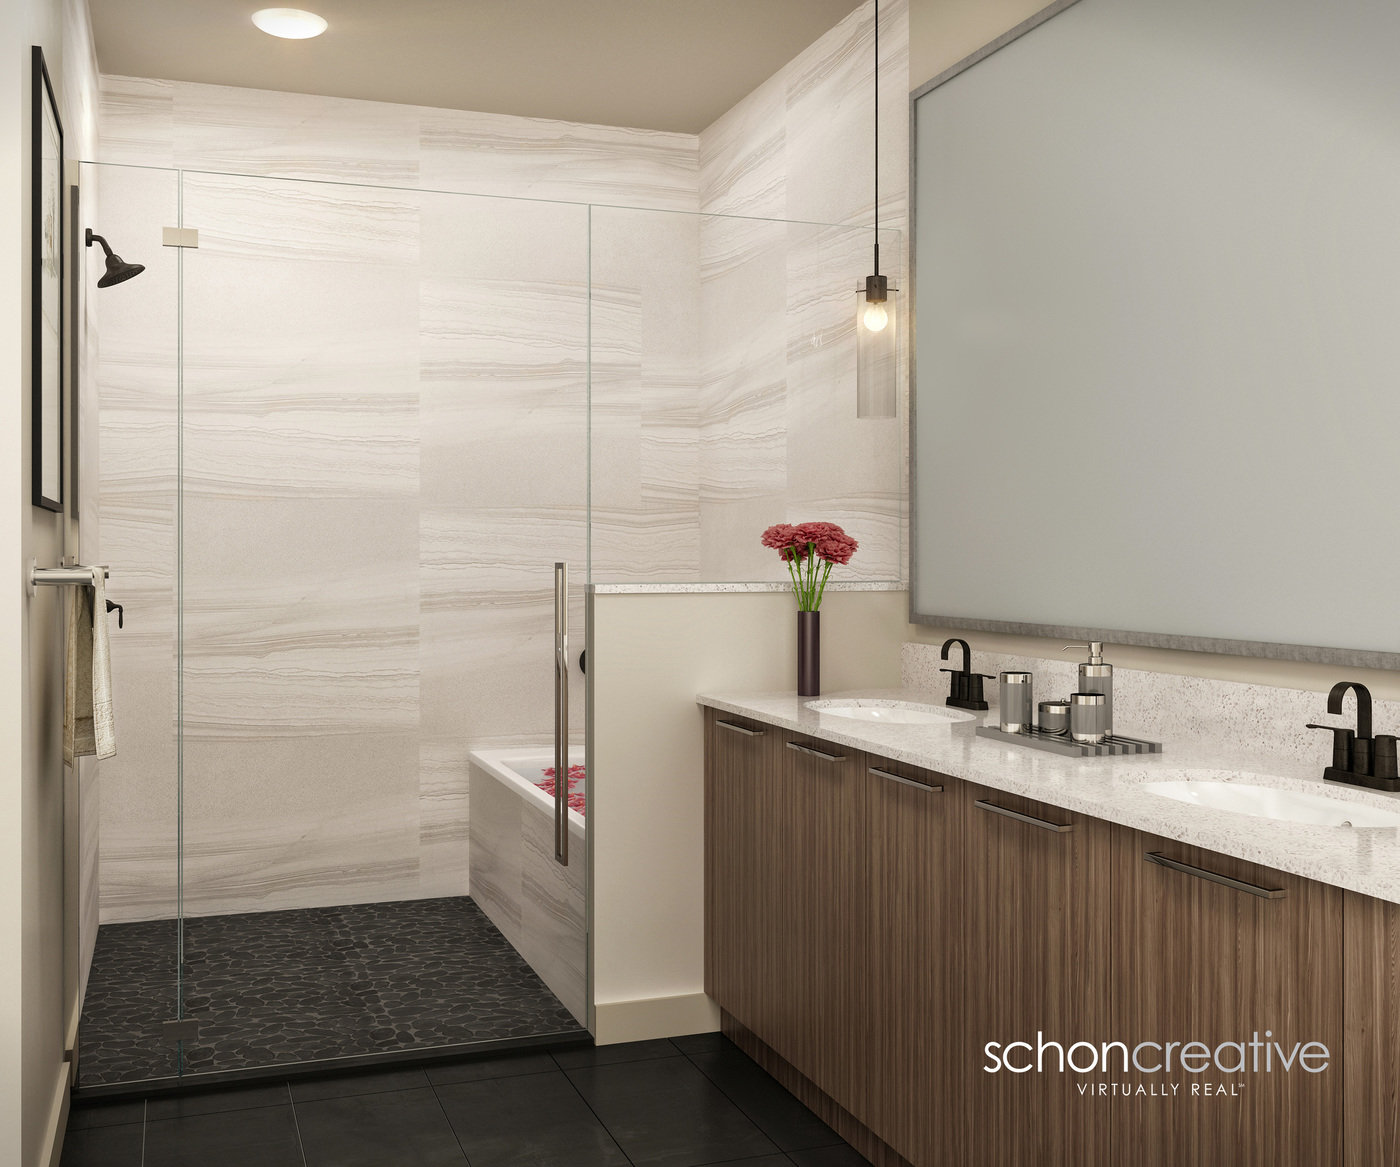 Furnished Apartments Near Georgia Tech: Schon Creative Animation - Virtually Real Since 1999